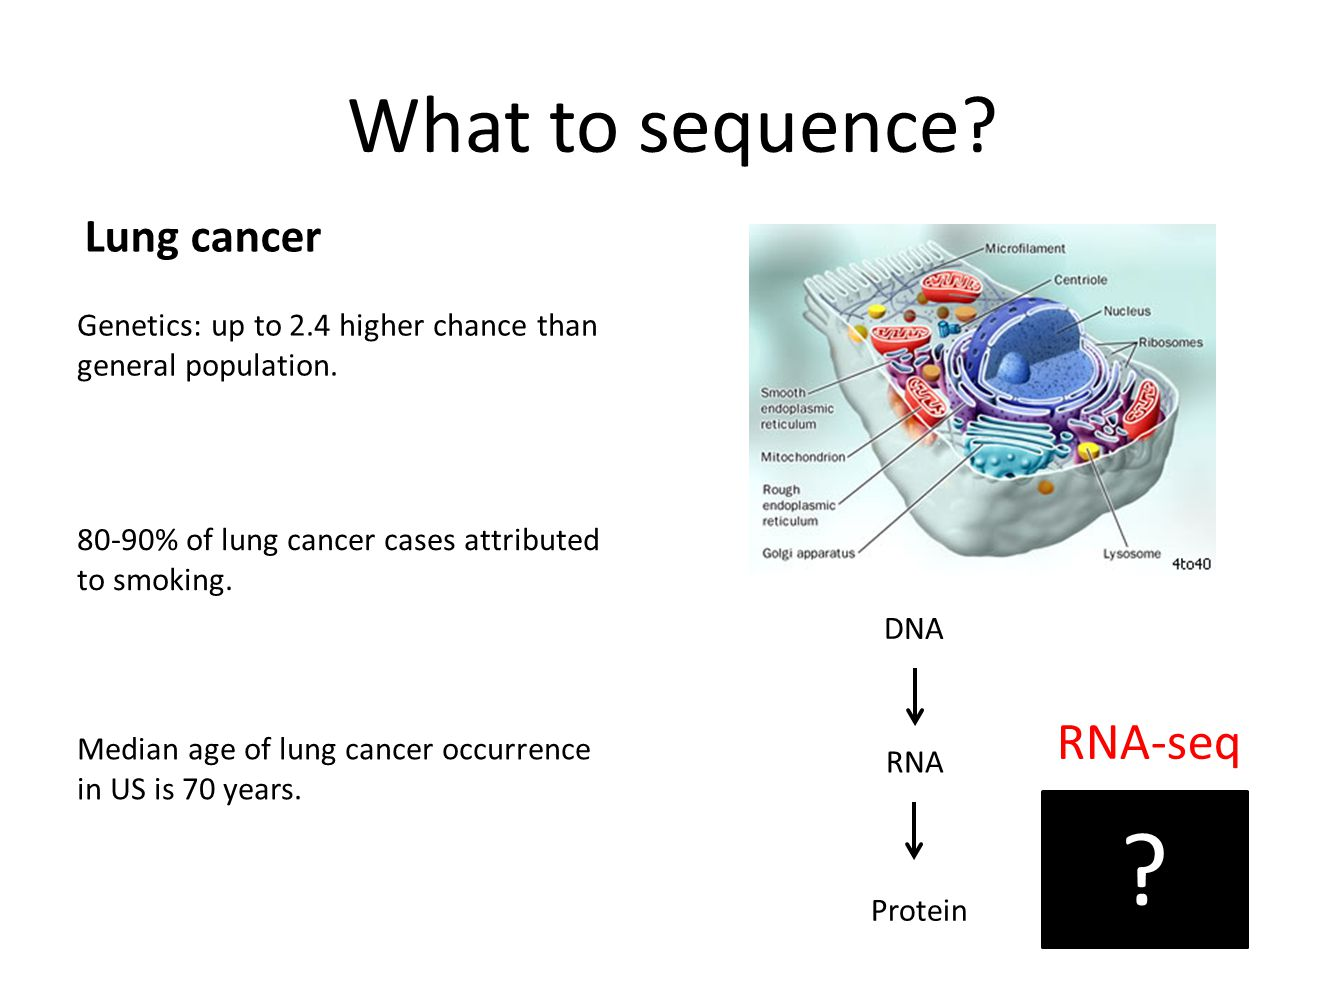 What to sequence RNA-seq Lung cancer